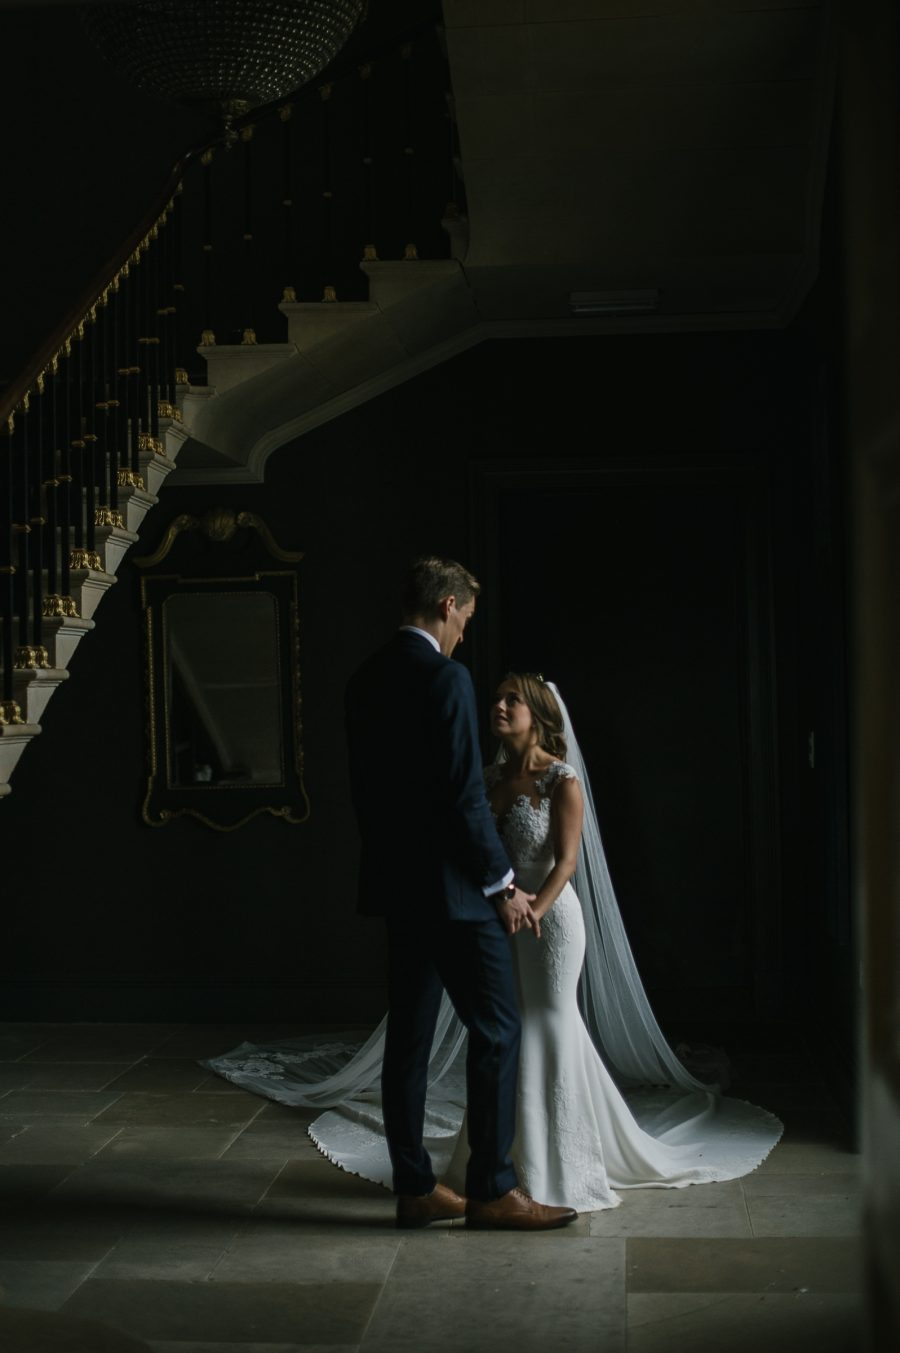 Wedding photograph for Olivia & Oliver